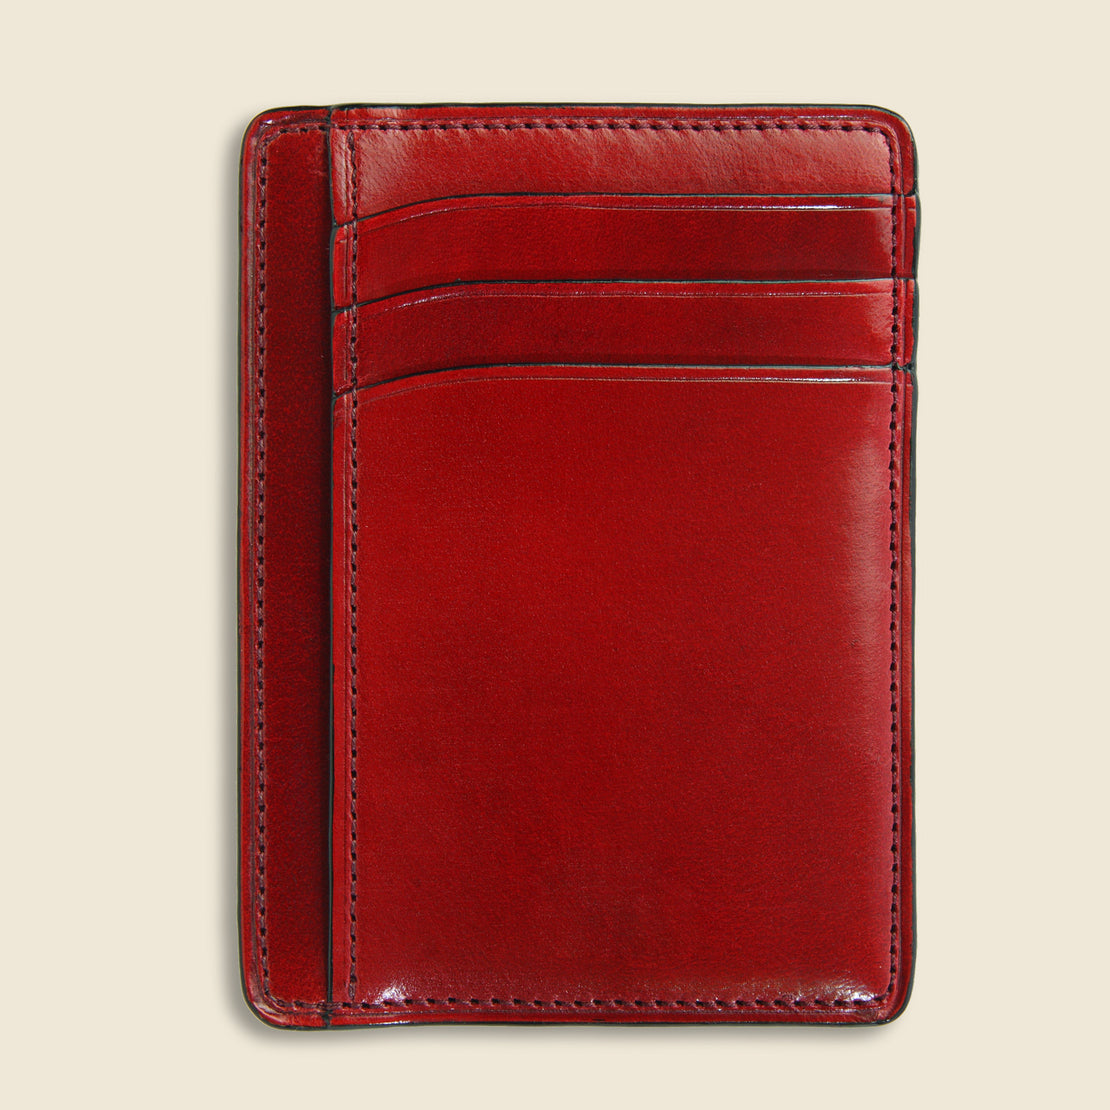 Card and Document Case - Cherry - Il Bussetto - STAG Provisions - Accessories - Wallets